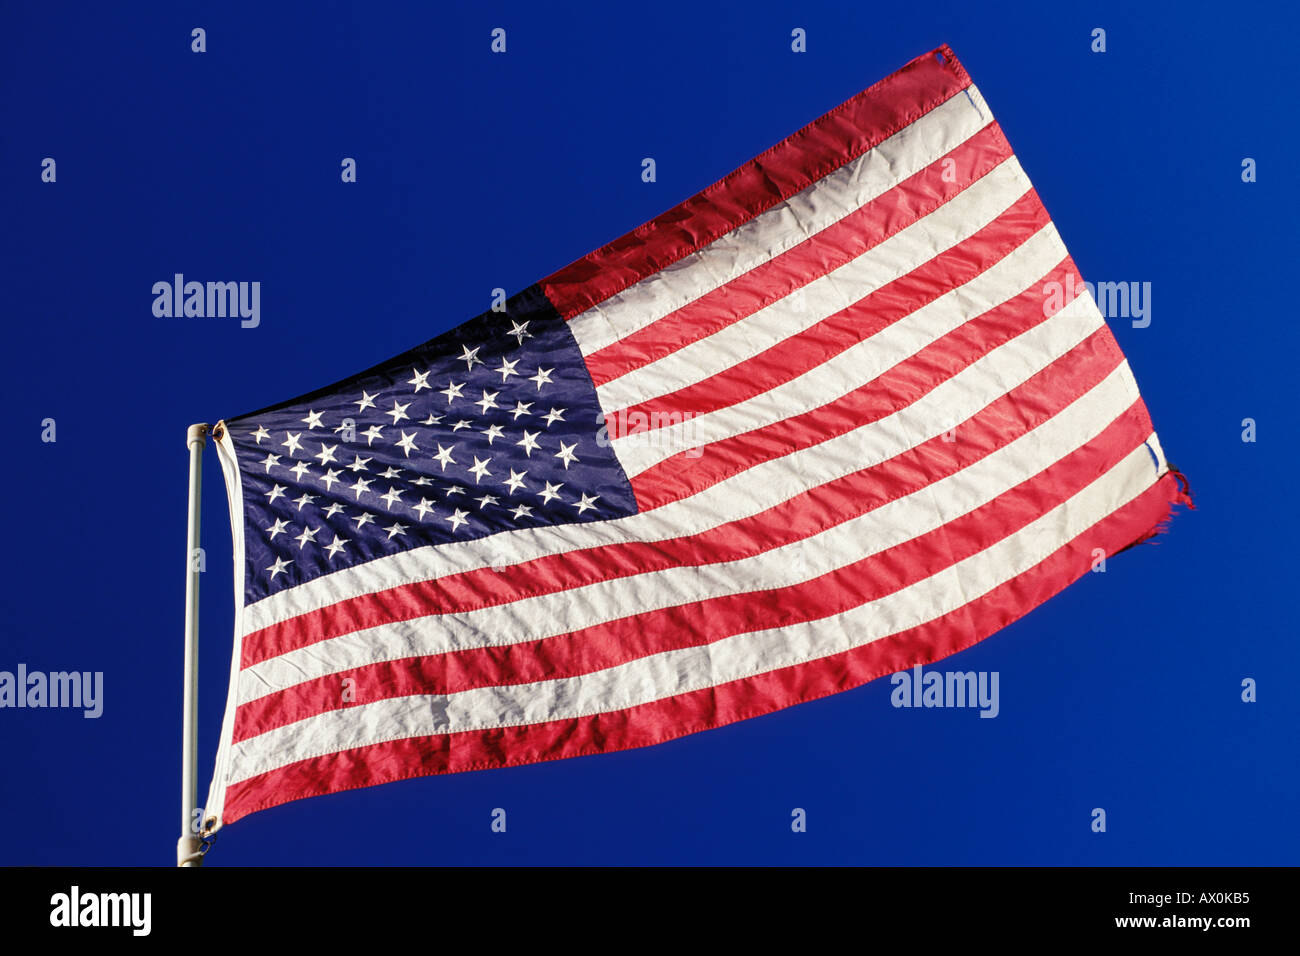 Flags, American flag - Stock Image